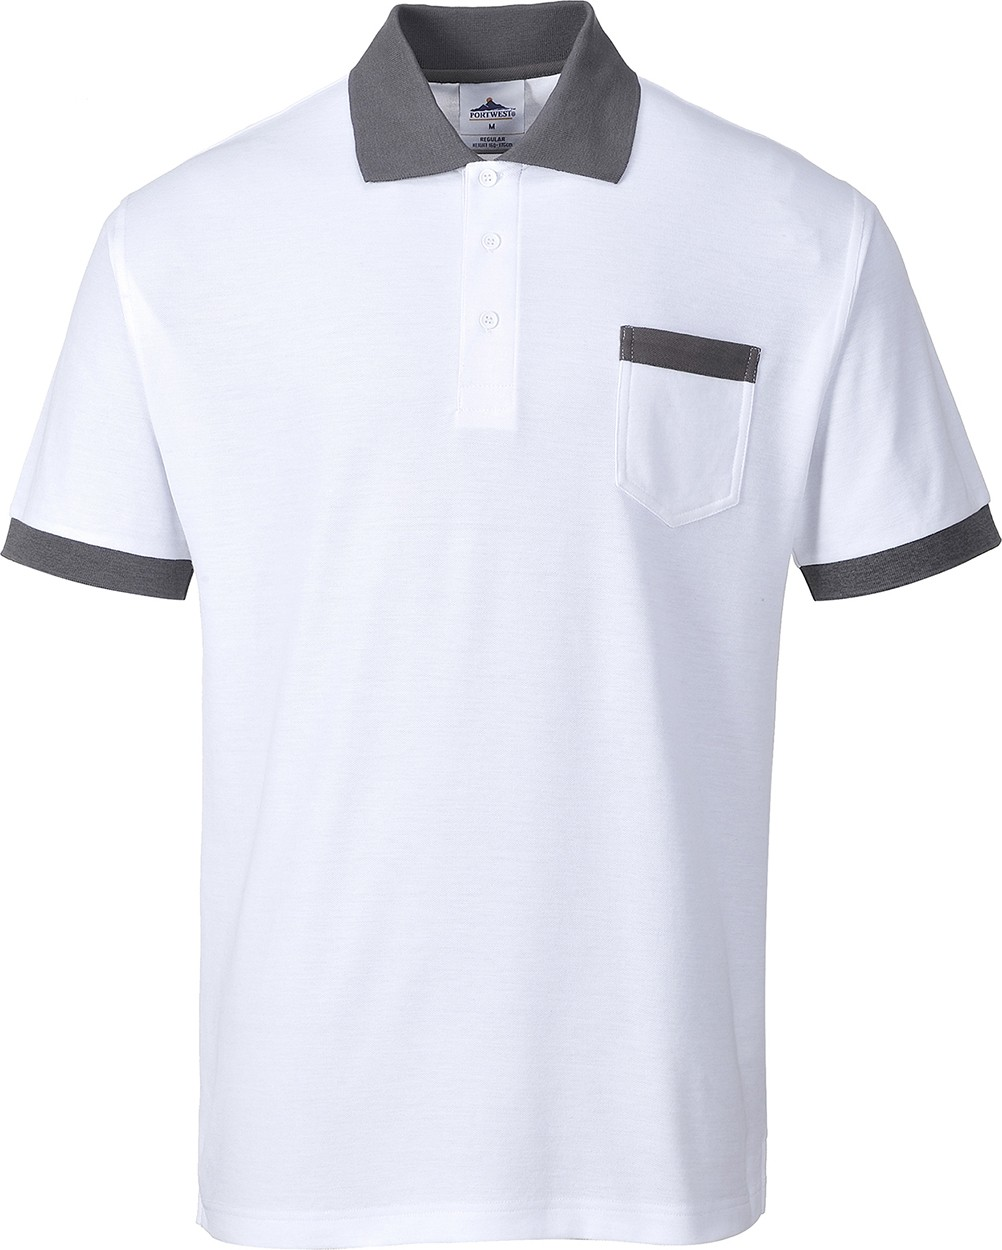 Portwest Deorator Polo w/ ribbed knit collar and cuff